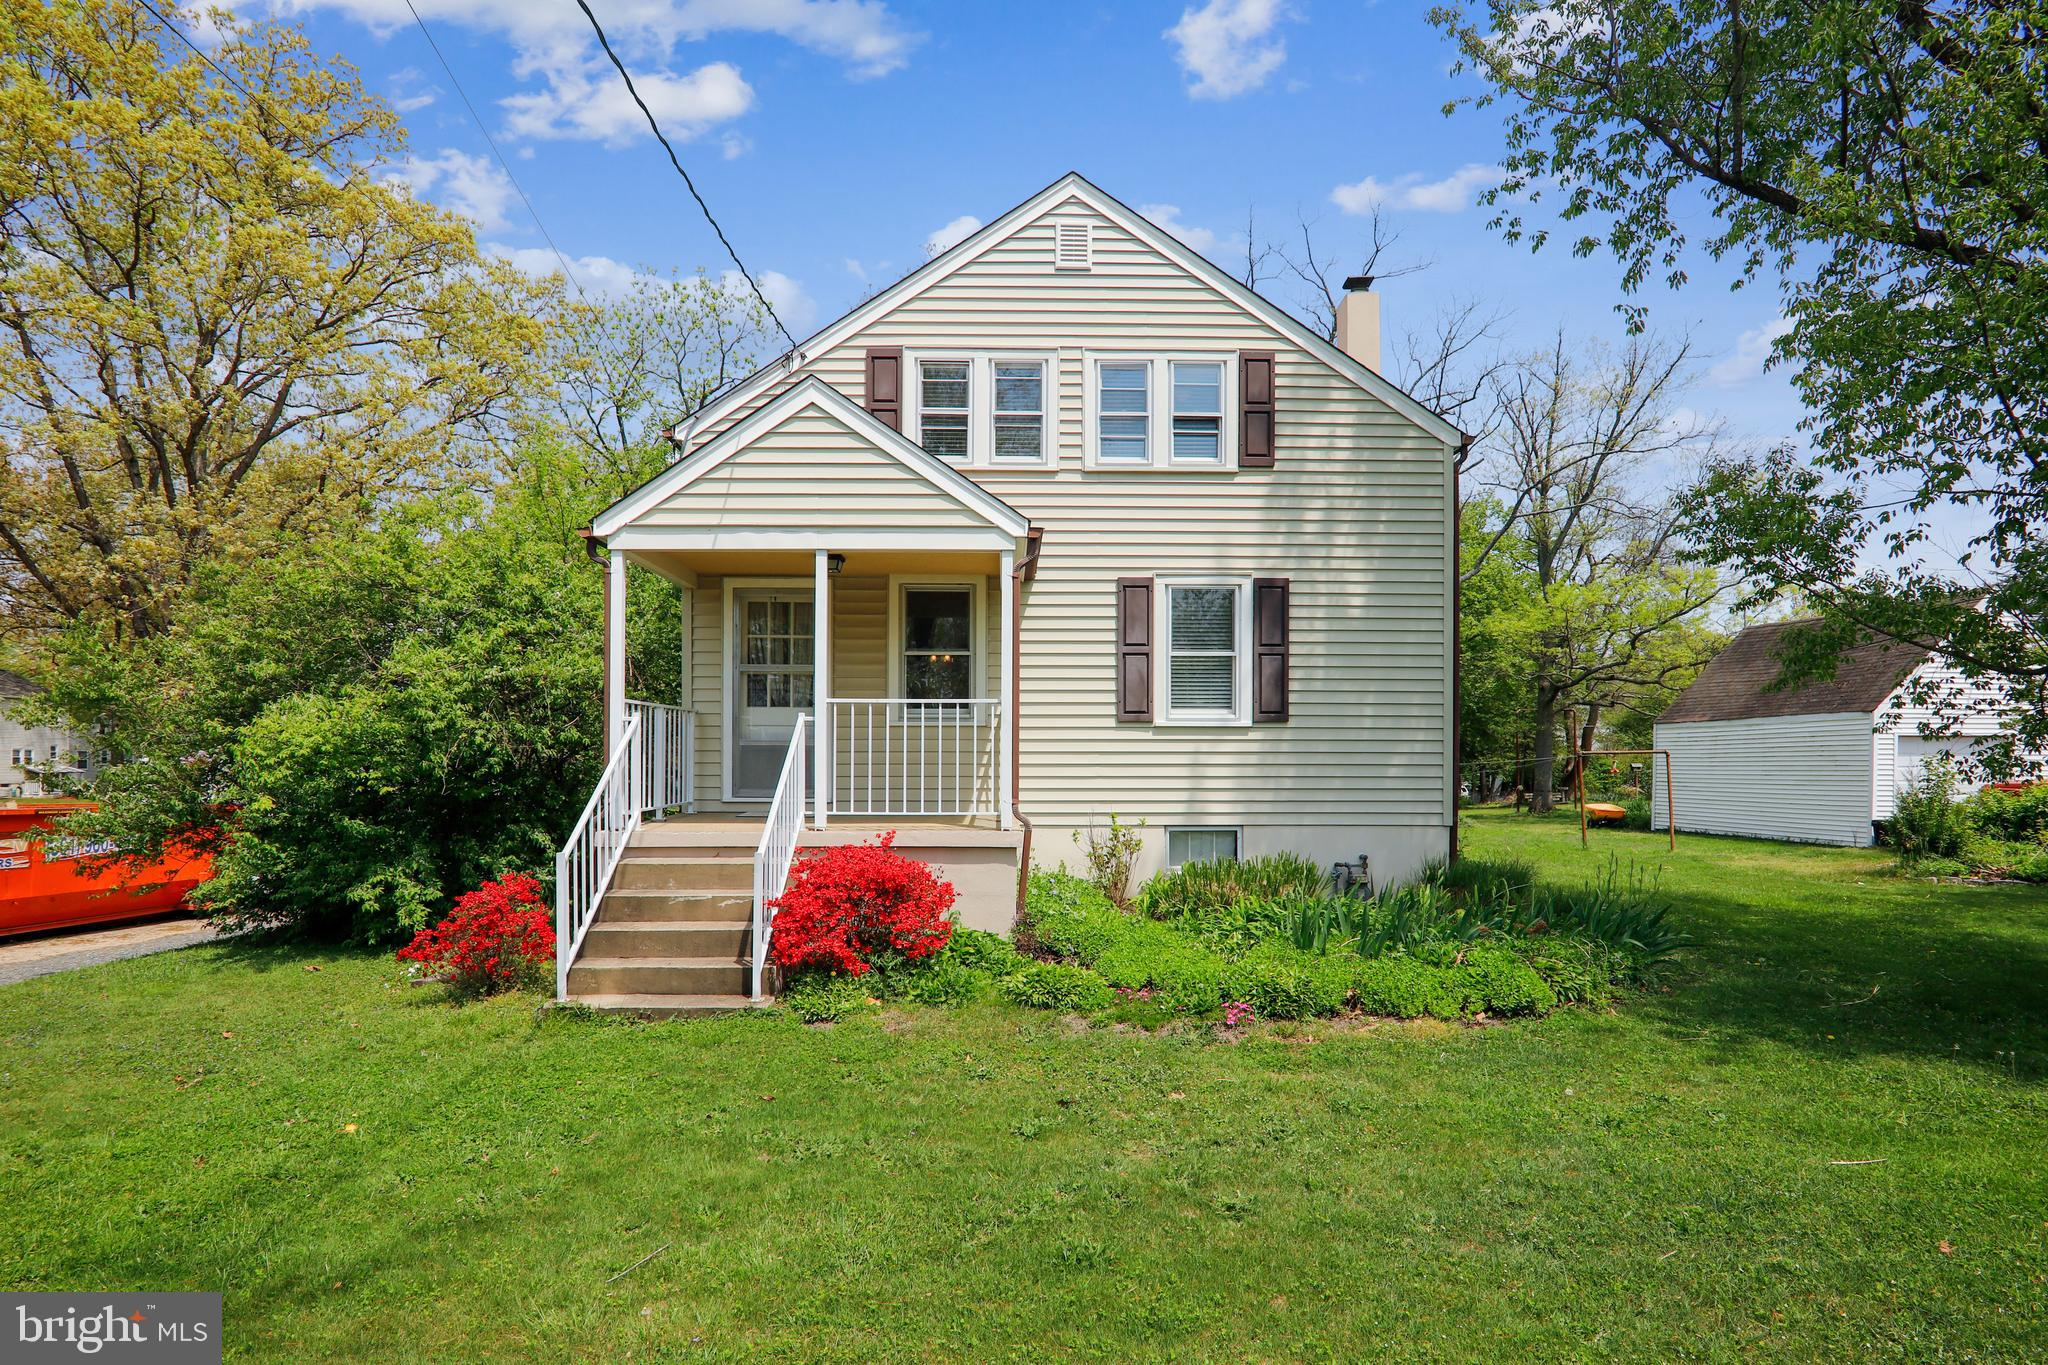 GREAT PRICE ON THIS ONE OF A KIND FIND!  CHARMING CAPE COD ON LOVELY HALF ACRE LOT FEATURES 4 BEDROO